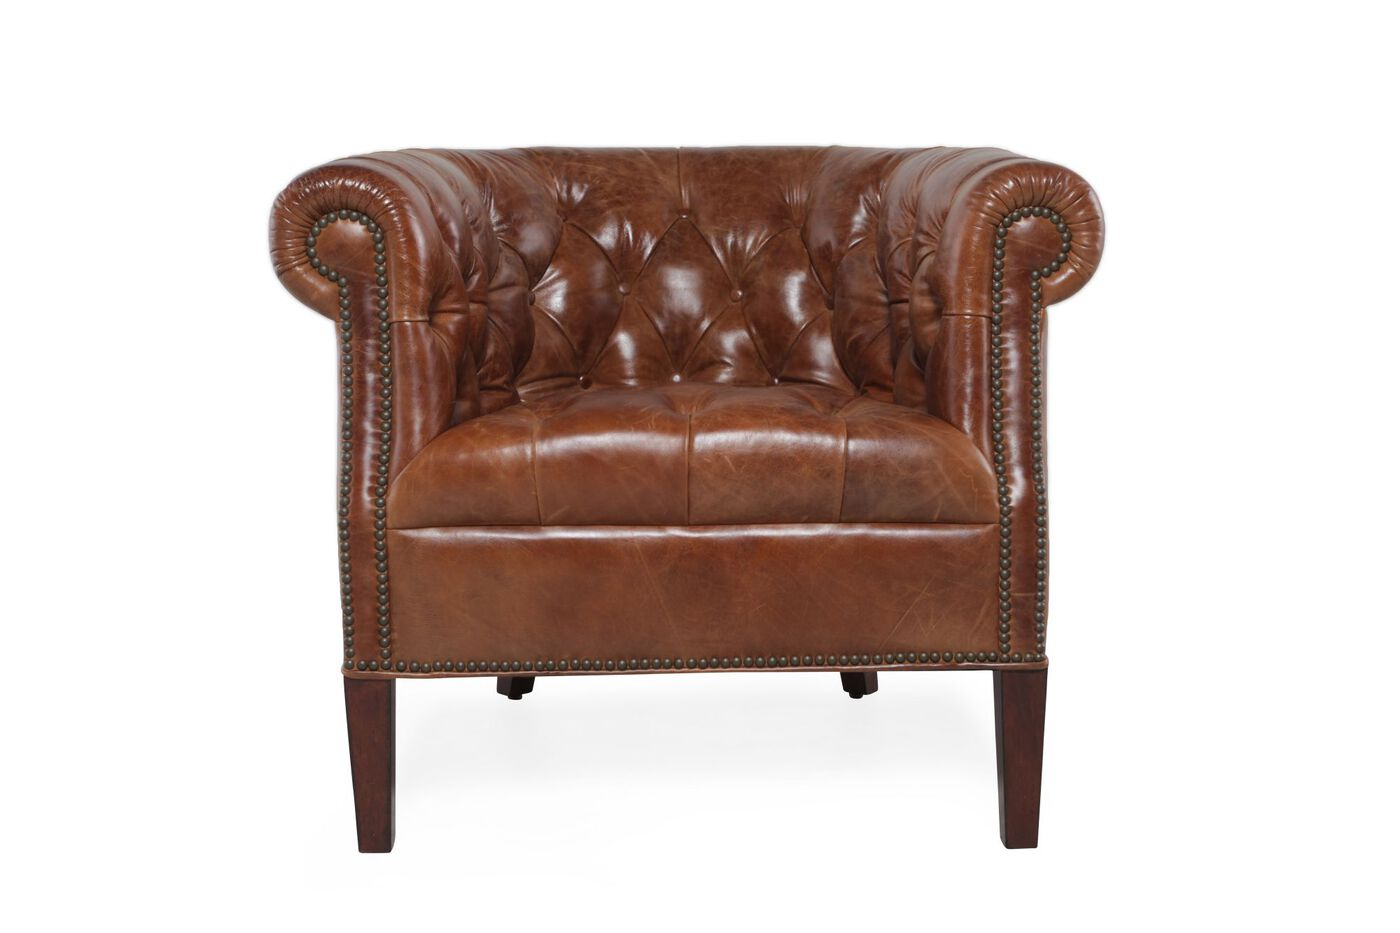 Button-Tufted Leather Tub Chair in Chestnut Brown | Mathis Brothers ...